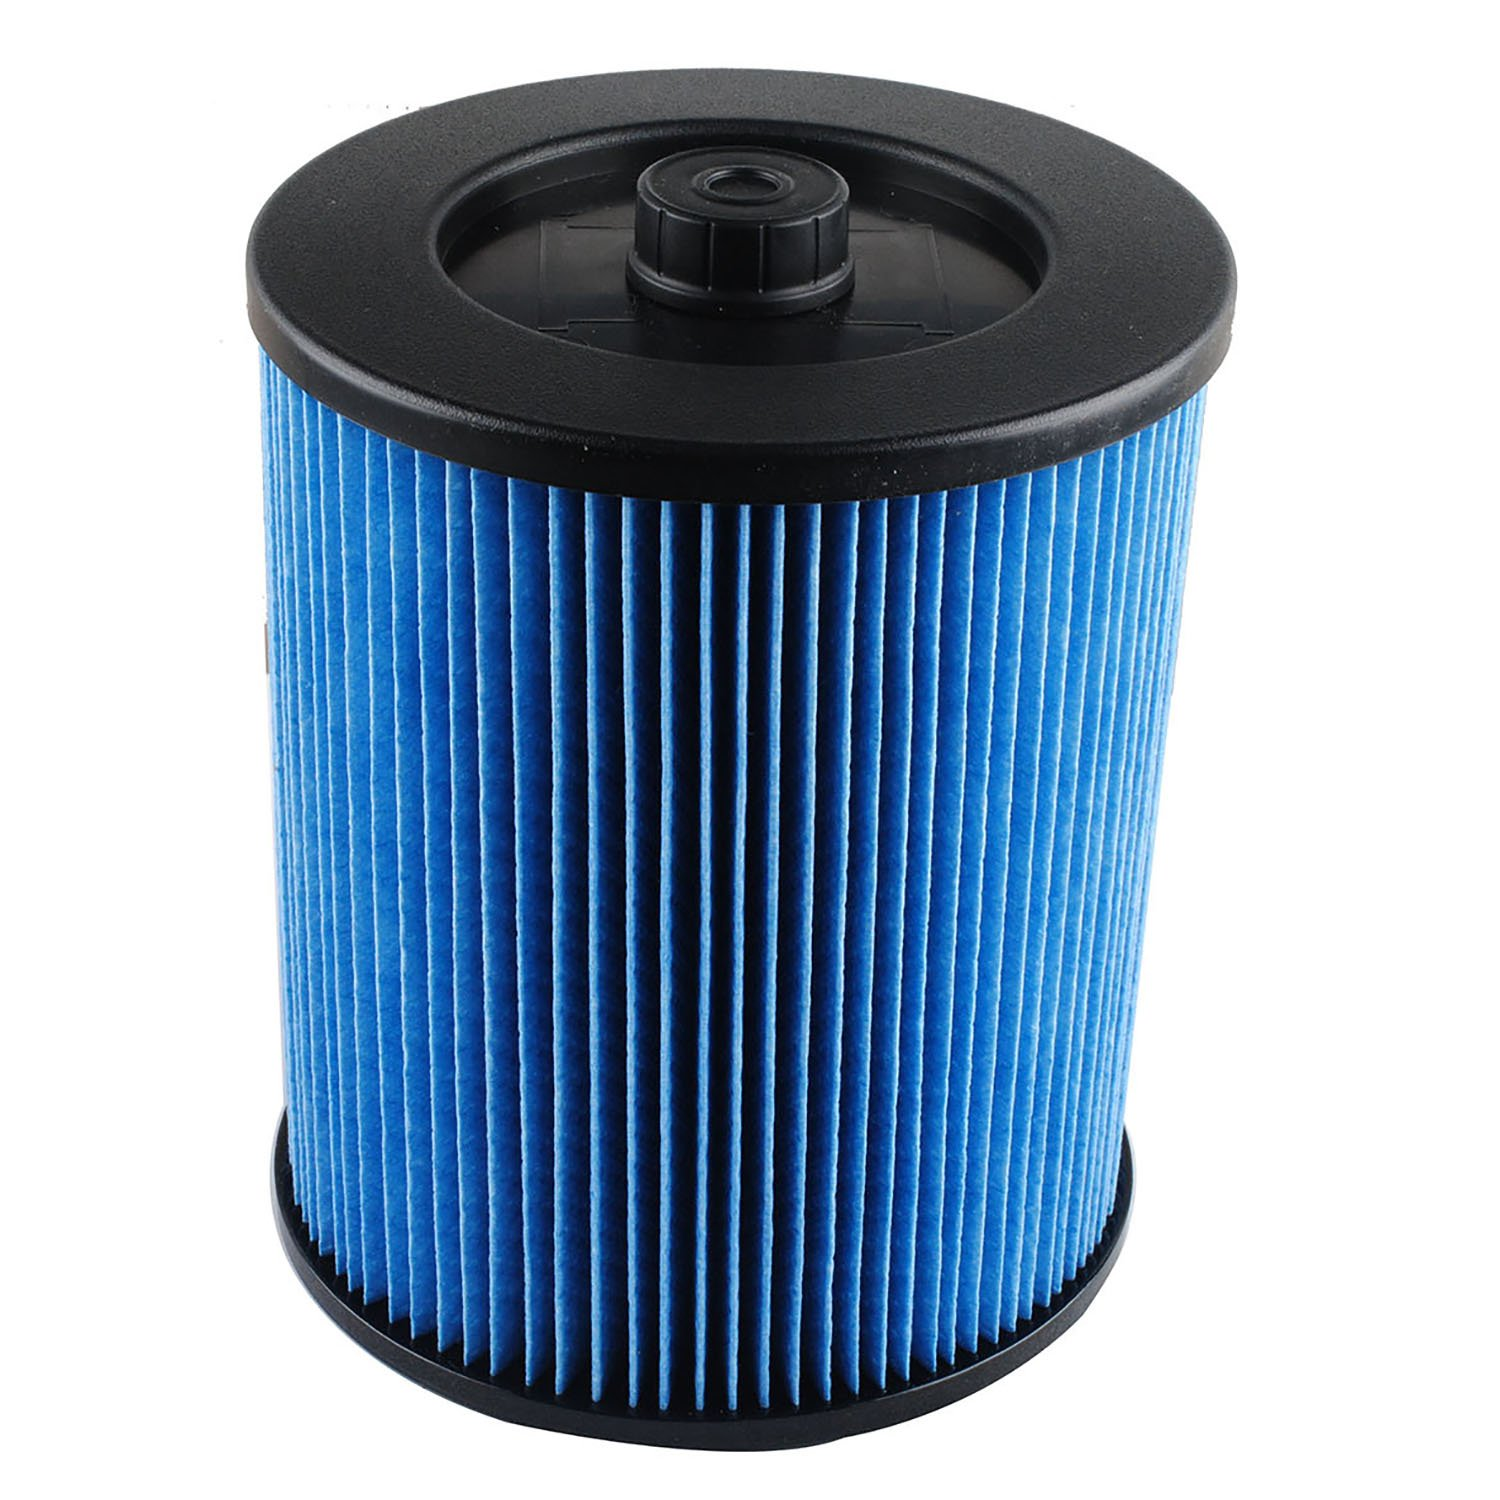 17907 Shop Vac Filters Replacement Compatible with Craftsman Fine Dust Collection Fits 113177780 113177895 113179100 by Podoy